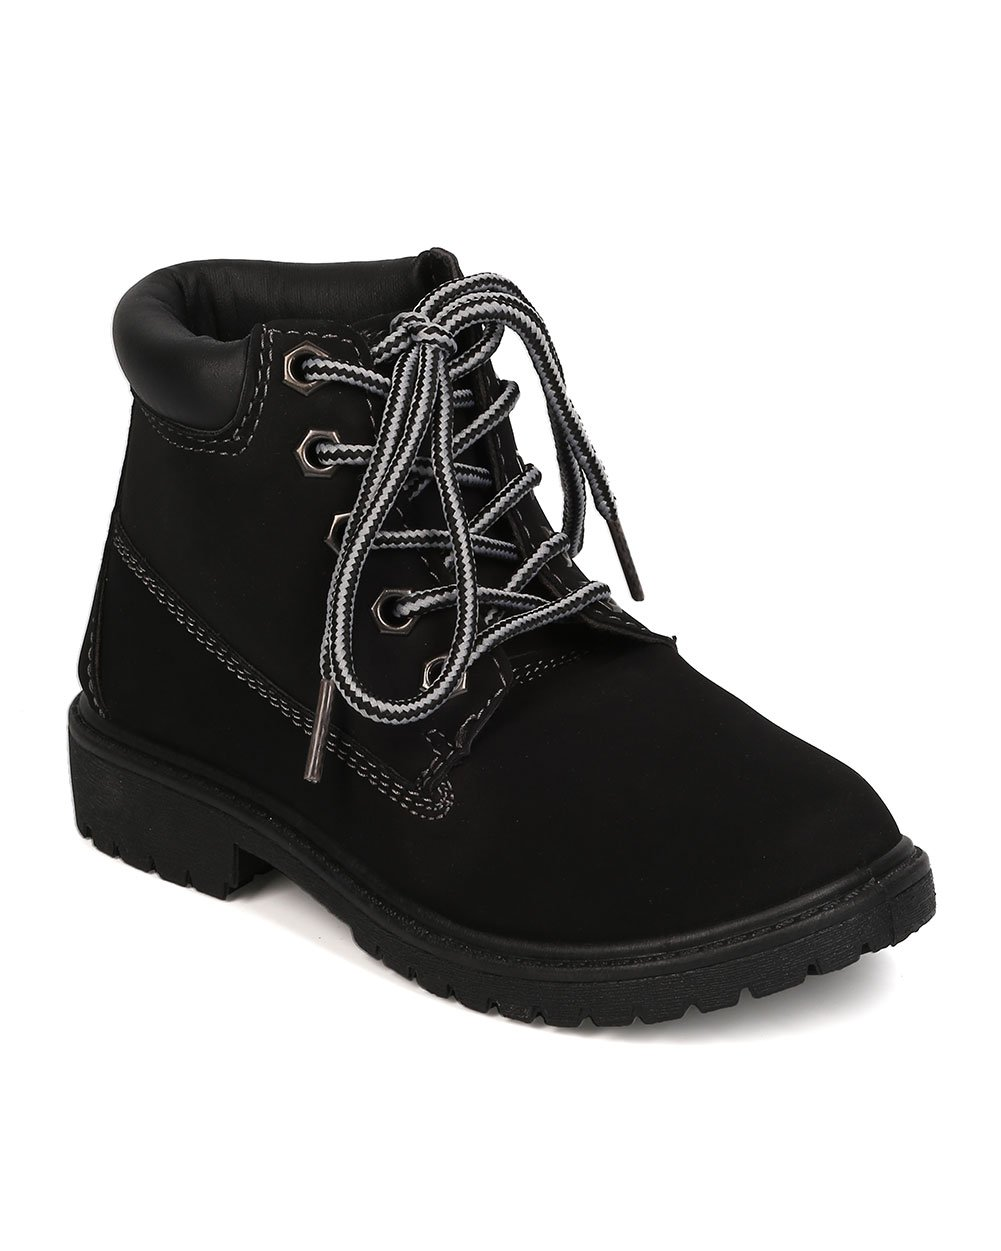 Nubuck Round Toe Lace Up Lug Sole All Weather Ankle Boot (Toddler/Little Girl/Big Girl) FA28 - Black (Size: Toddler 9) by Refresh (Image #1)